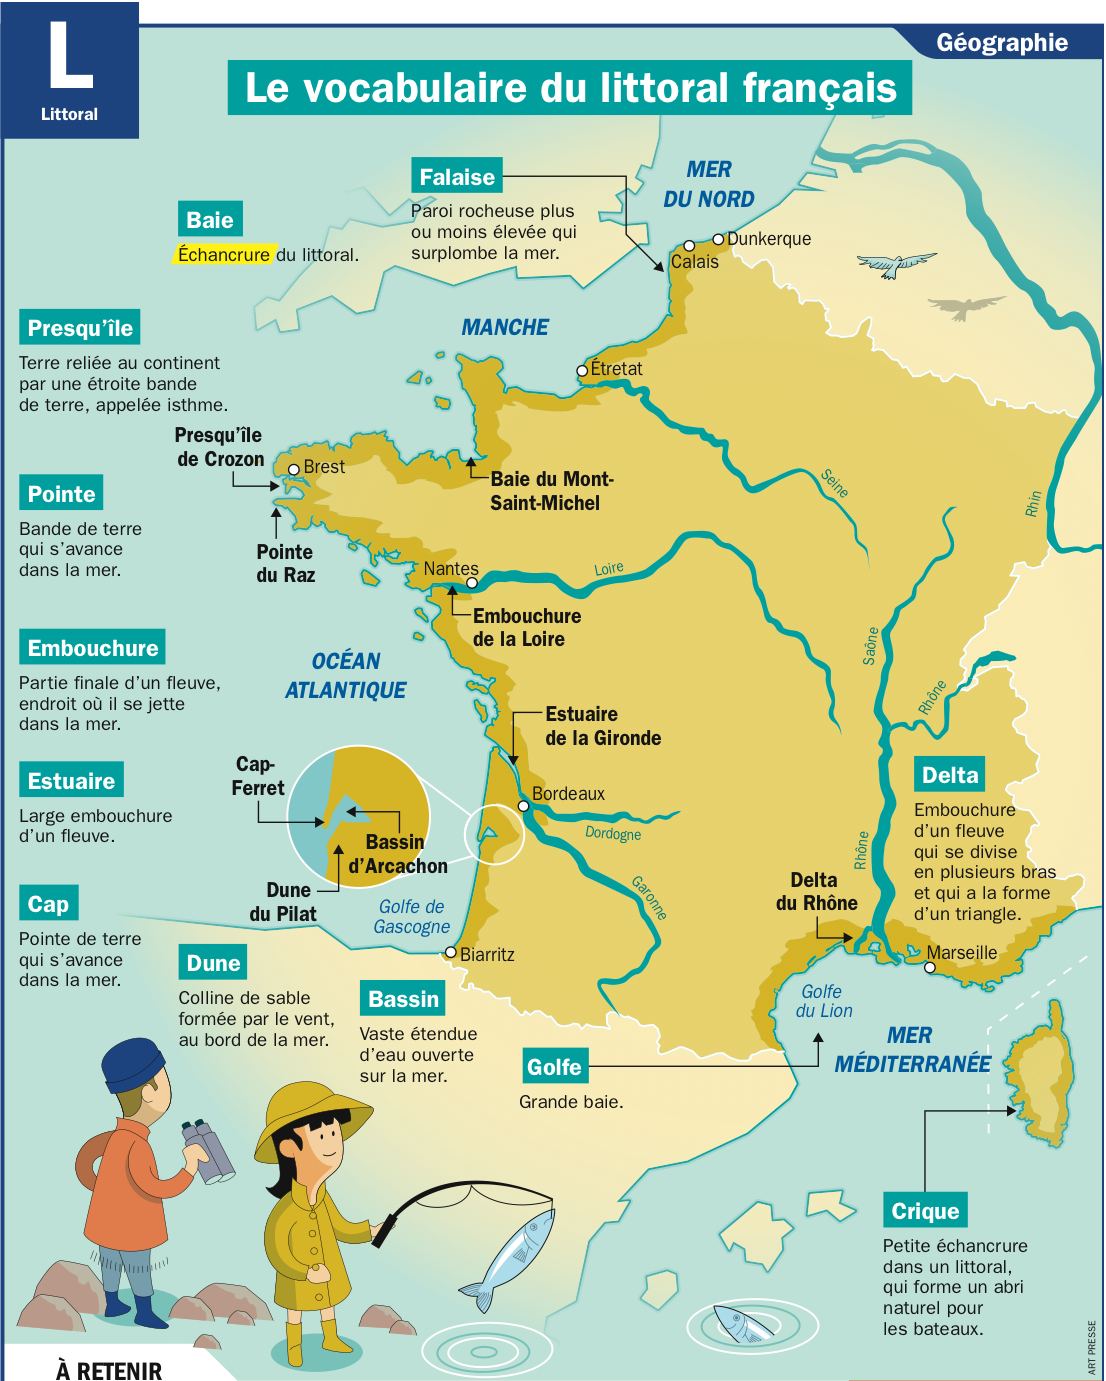 Le vocabulaire du littoral français